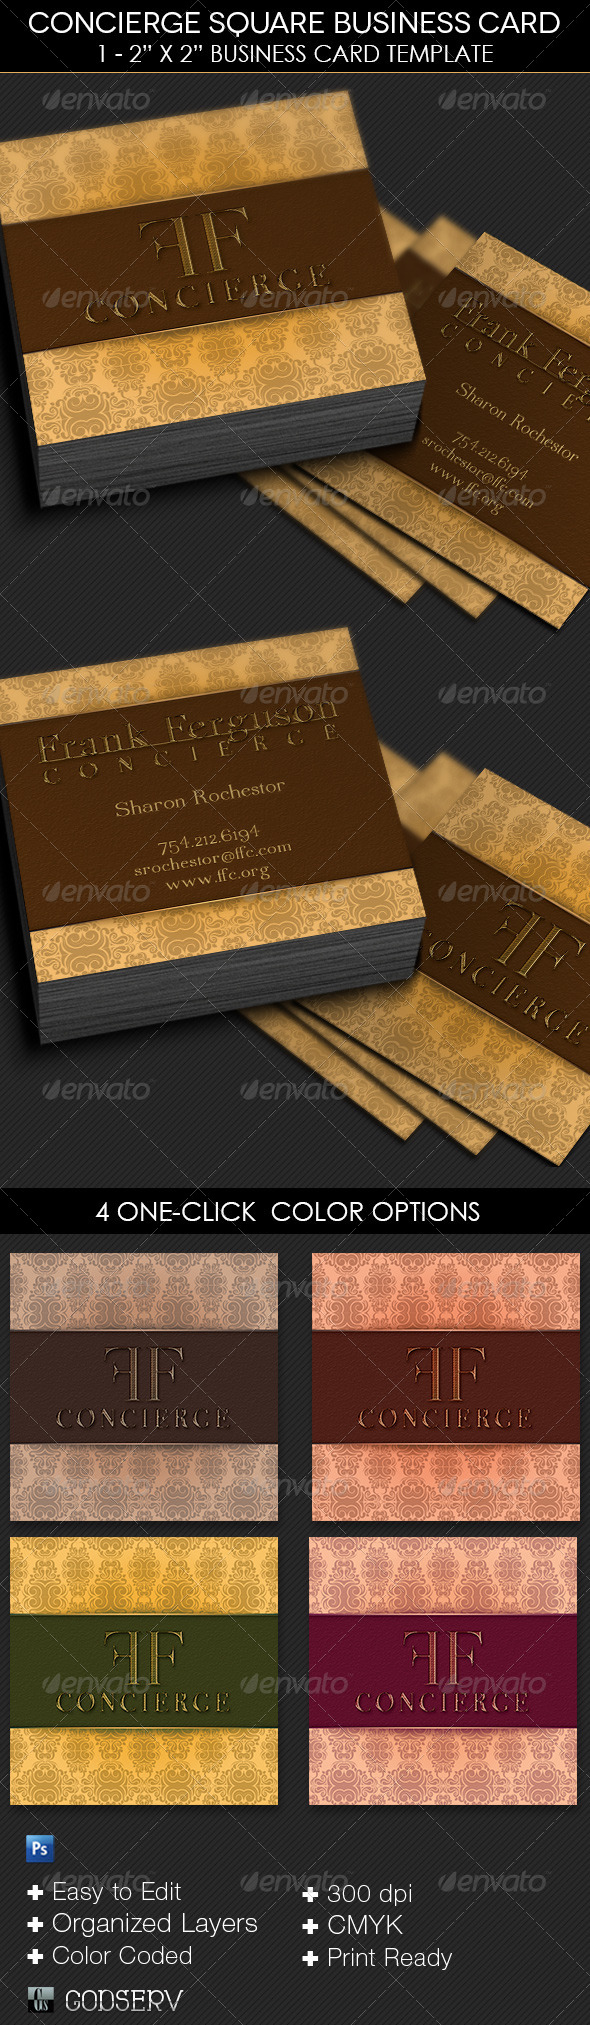 concierge square business card template by godserv on deviantart. Black Bedroom Furniture Sets. Home Design Ideas